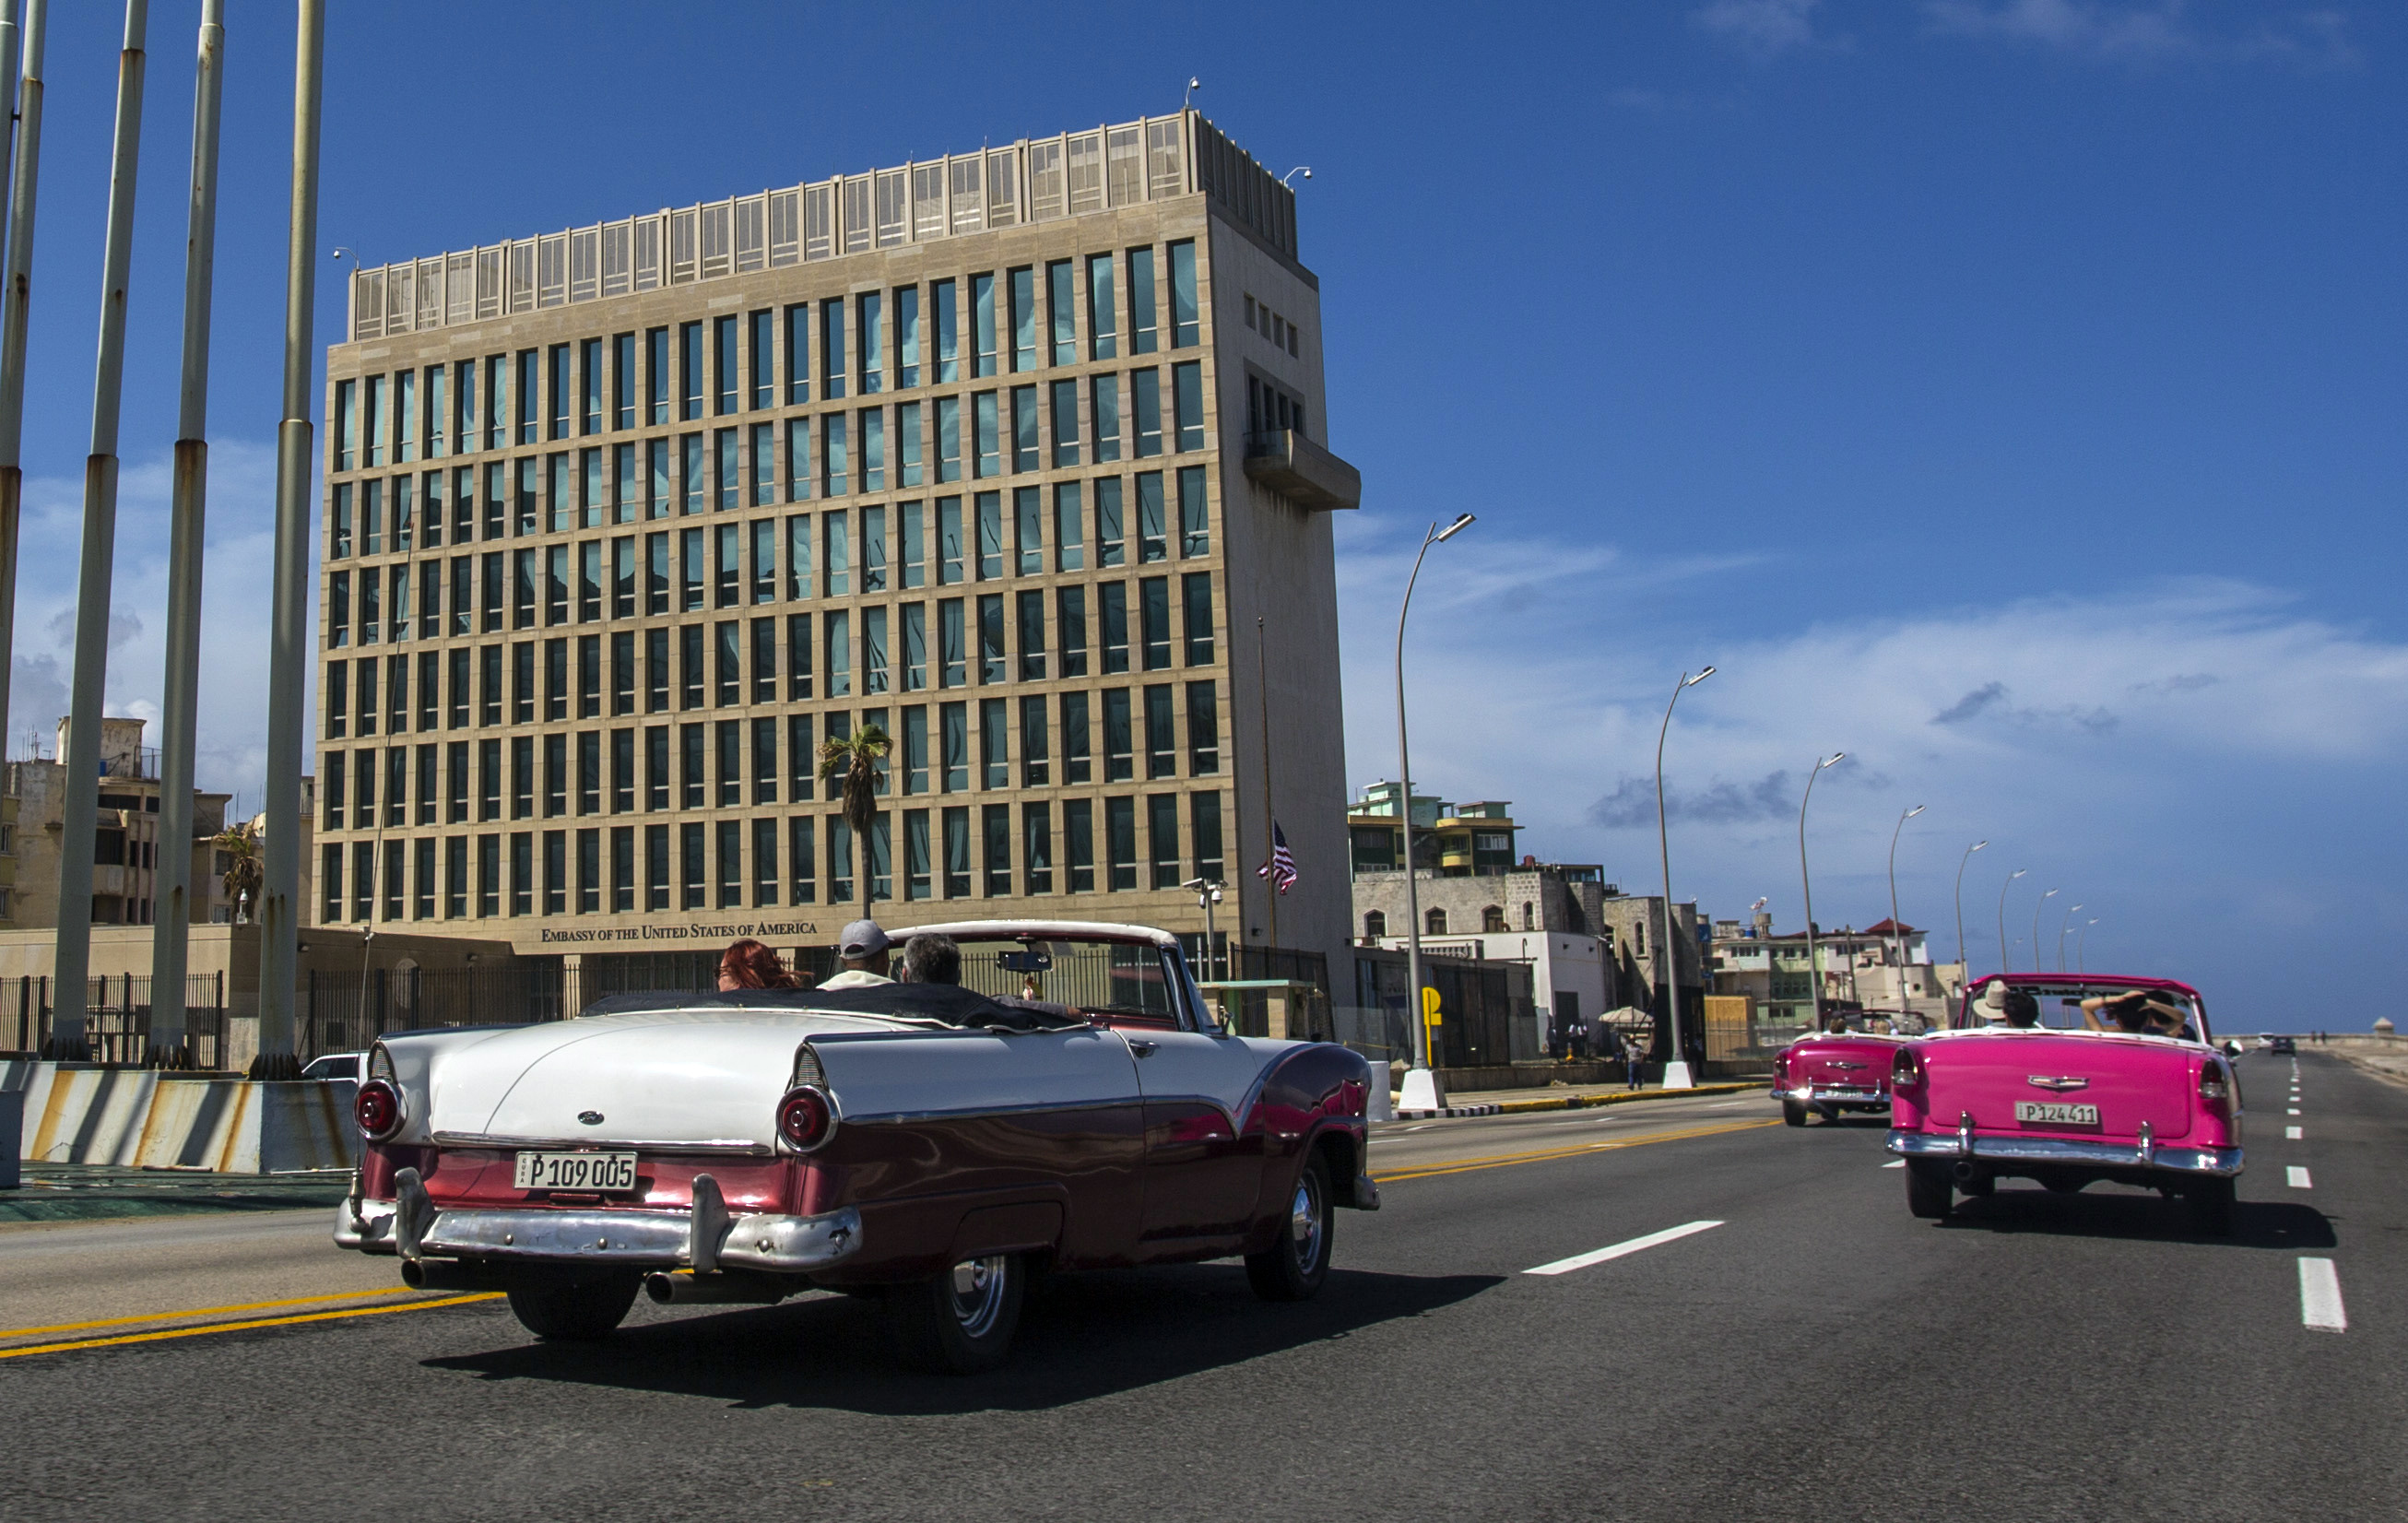 In this Oct. 3, 2017 photo, tourists ride classic convertible cars on the Malecon beside the United States Embassy in Havana, Cuba. (AP Photo/Desmond Boylan)